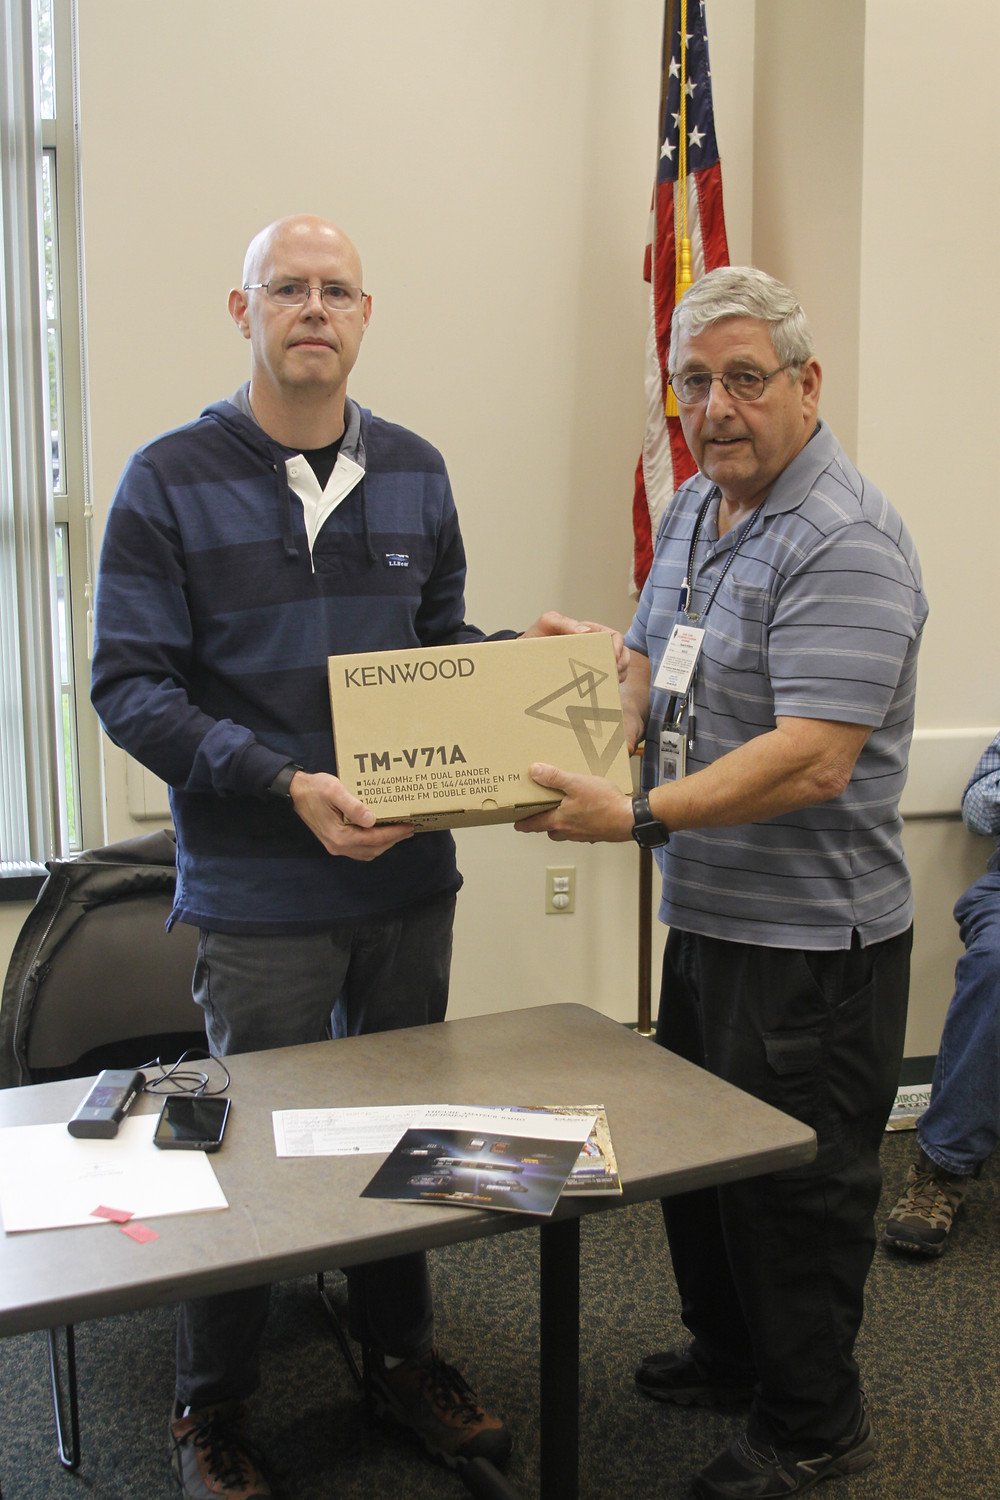 Jim Harrigan (left) receives his new radio from VE Examiner Dave Williams, N2VLQ